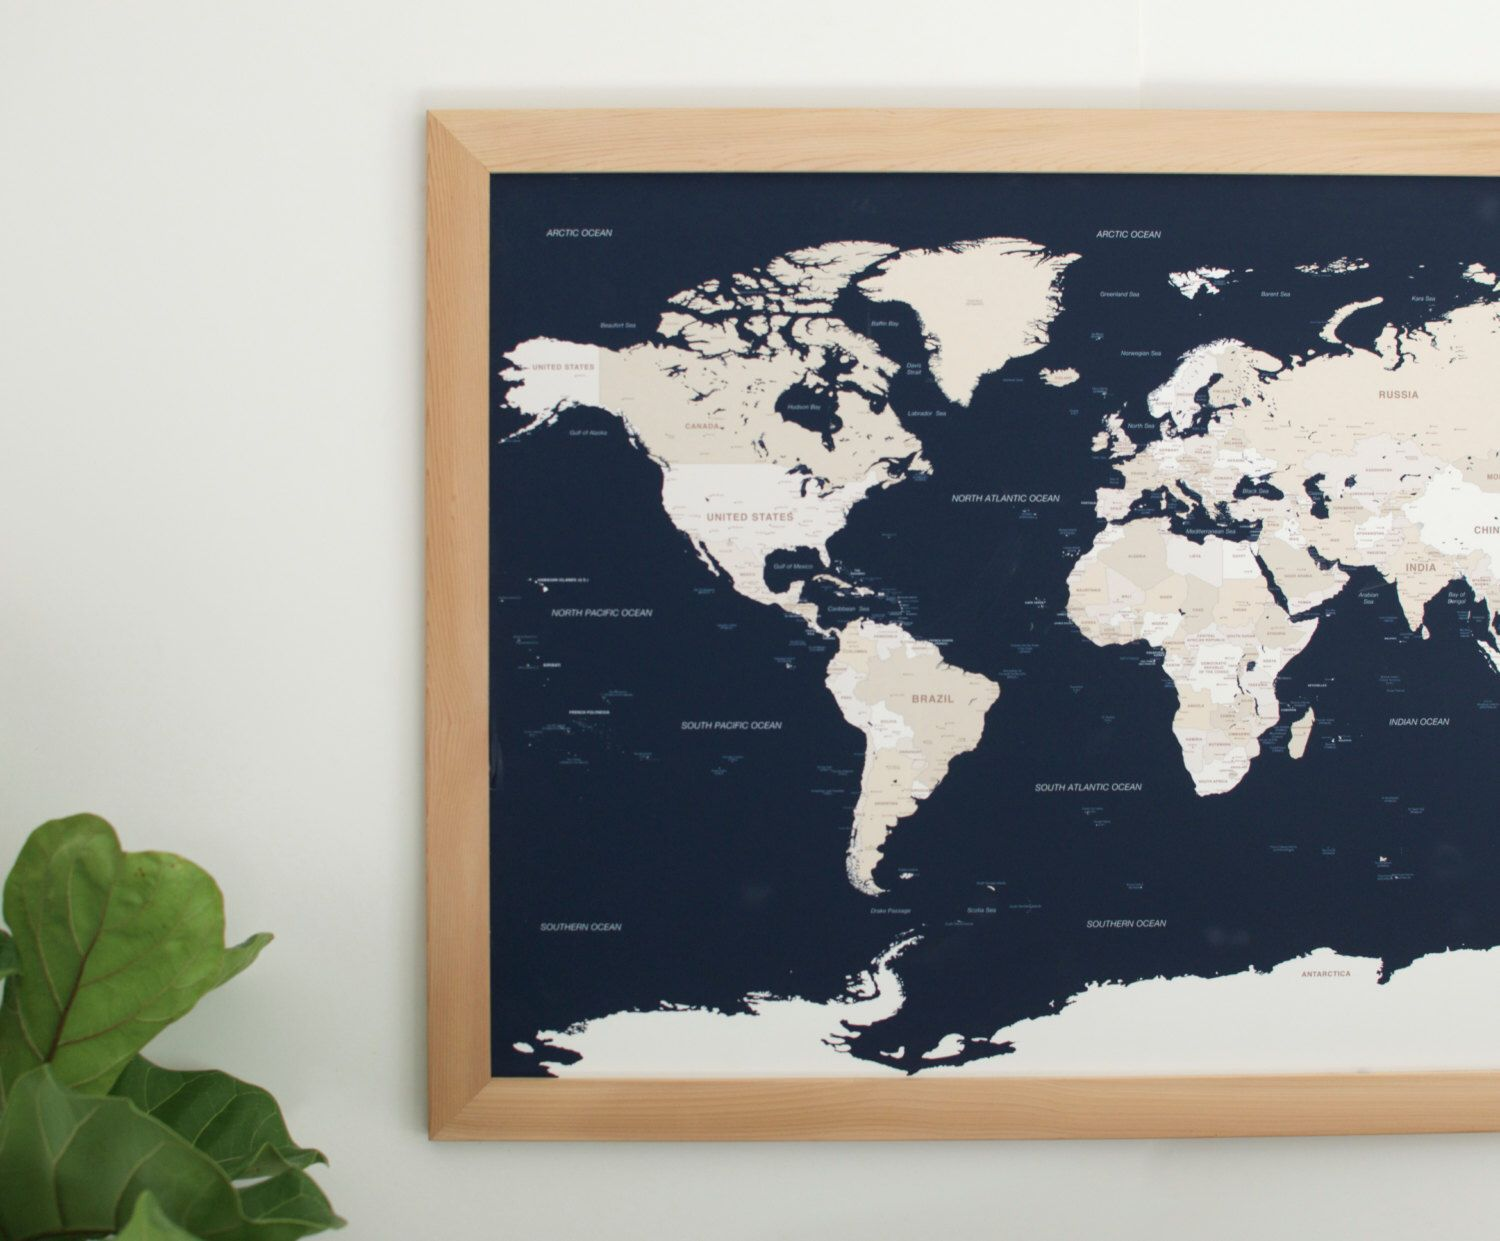 Push pin travel map navy blue world map push pin map push pin travel map navy blue world map push pin map handcrafted wood frame wedding anniversary gift christmas gifts for mom gumiabroncs Image collections